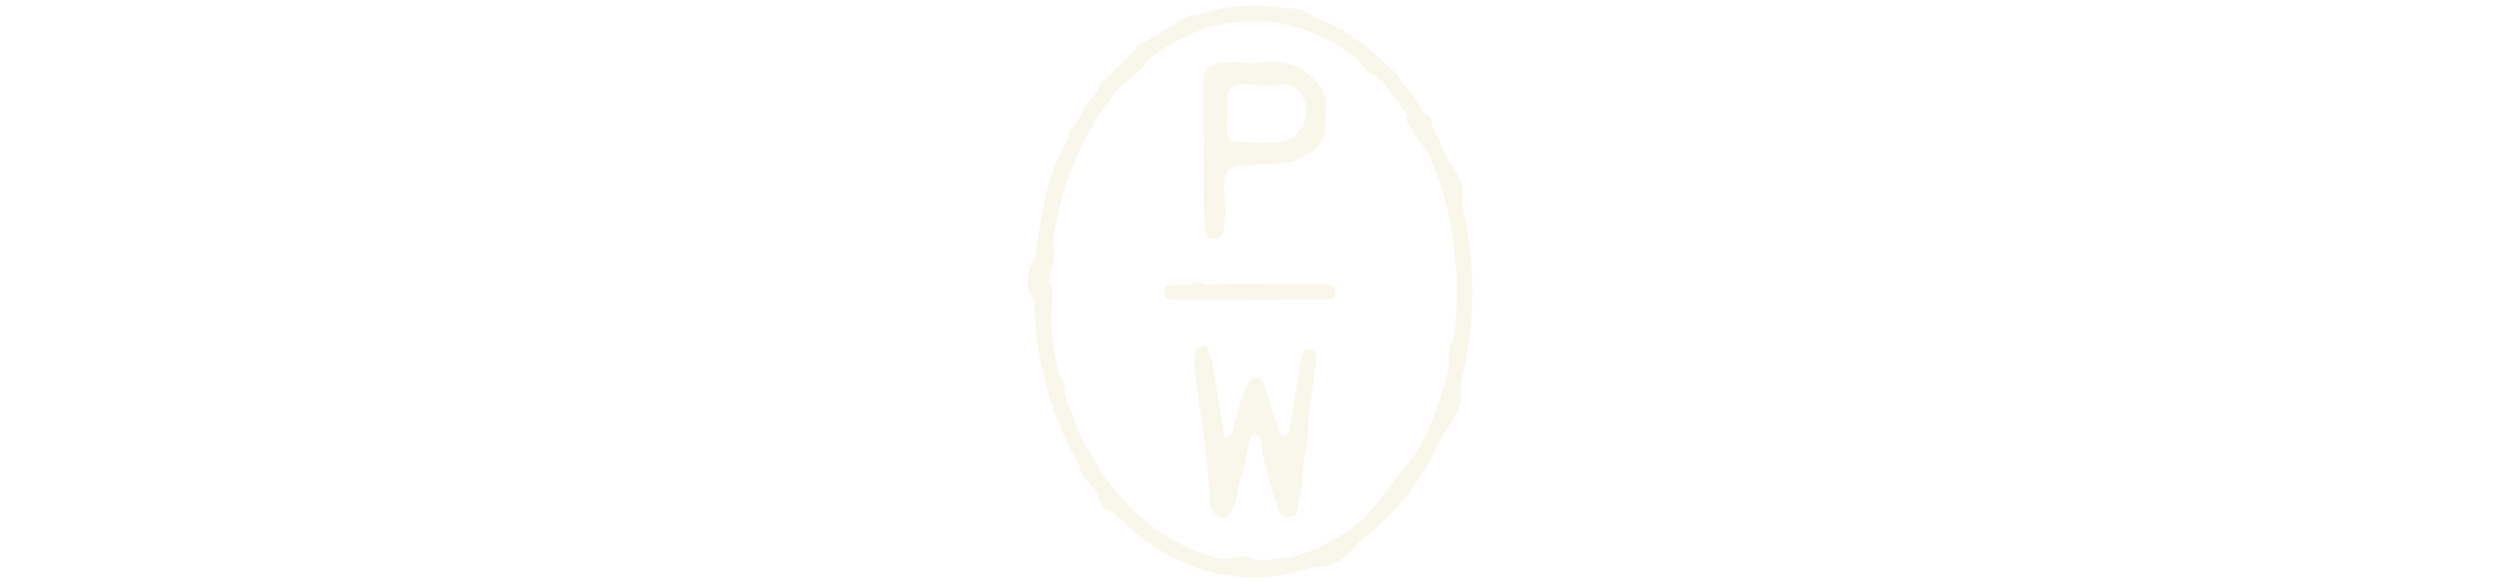 PW_C.Stack_Cream-01.png